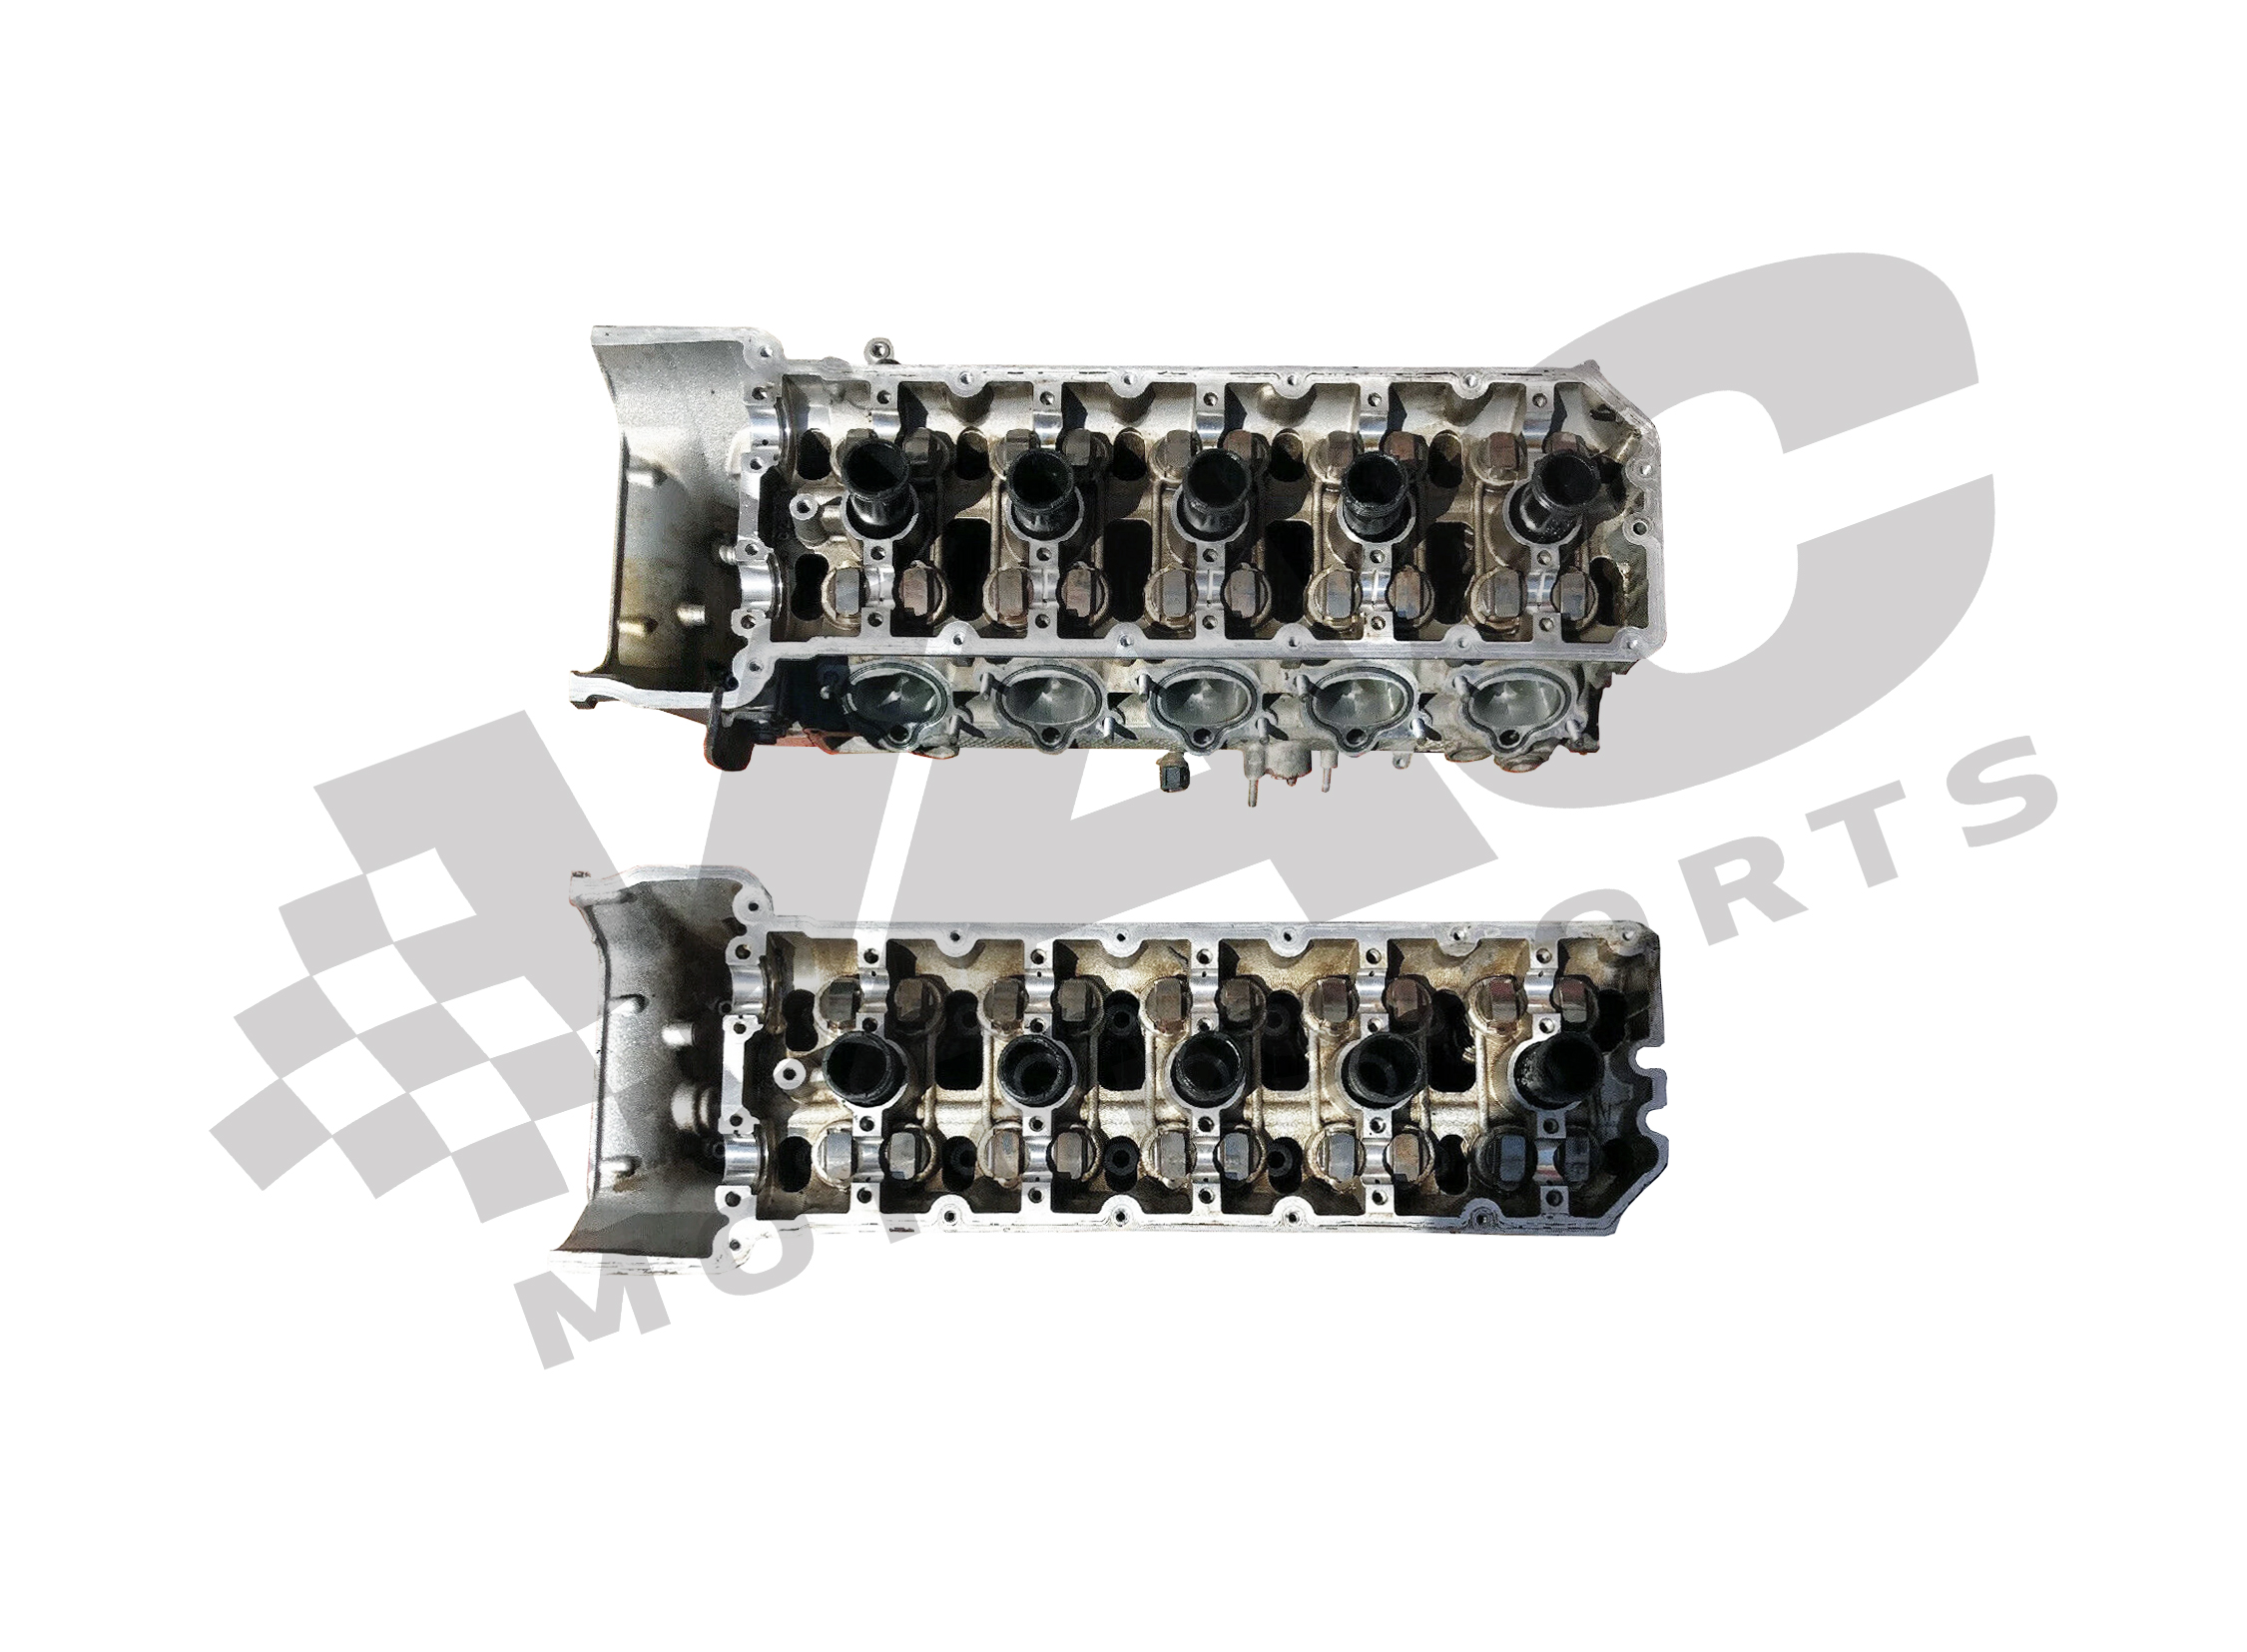 VAC - S85 Stage 3 Performance Cylinder Head THUMBNAIL